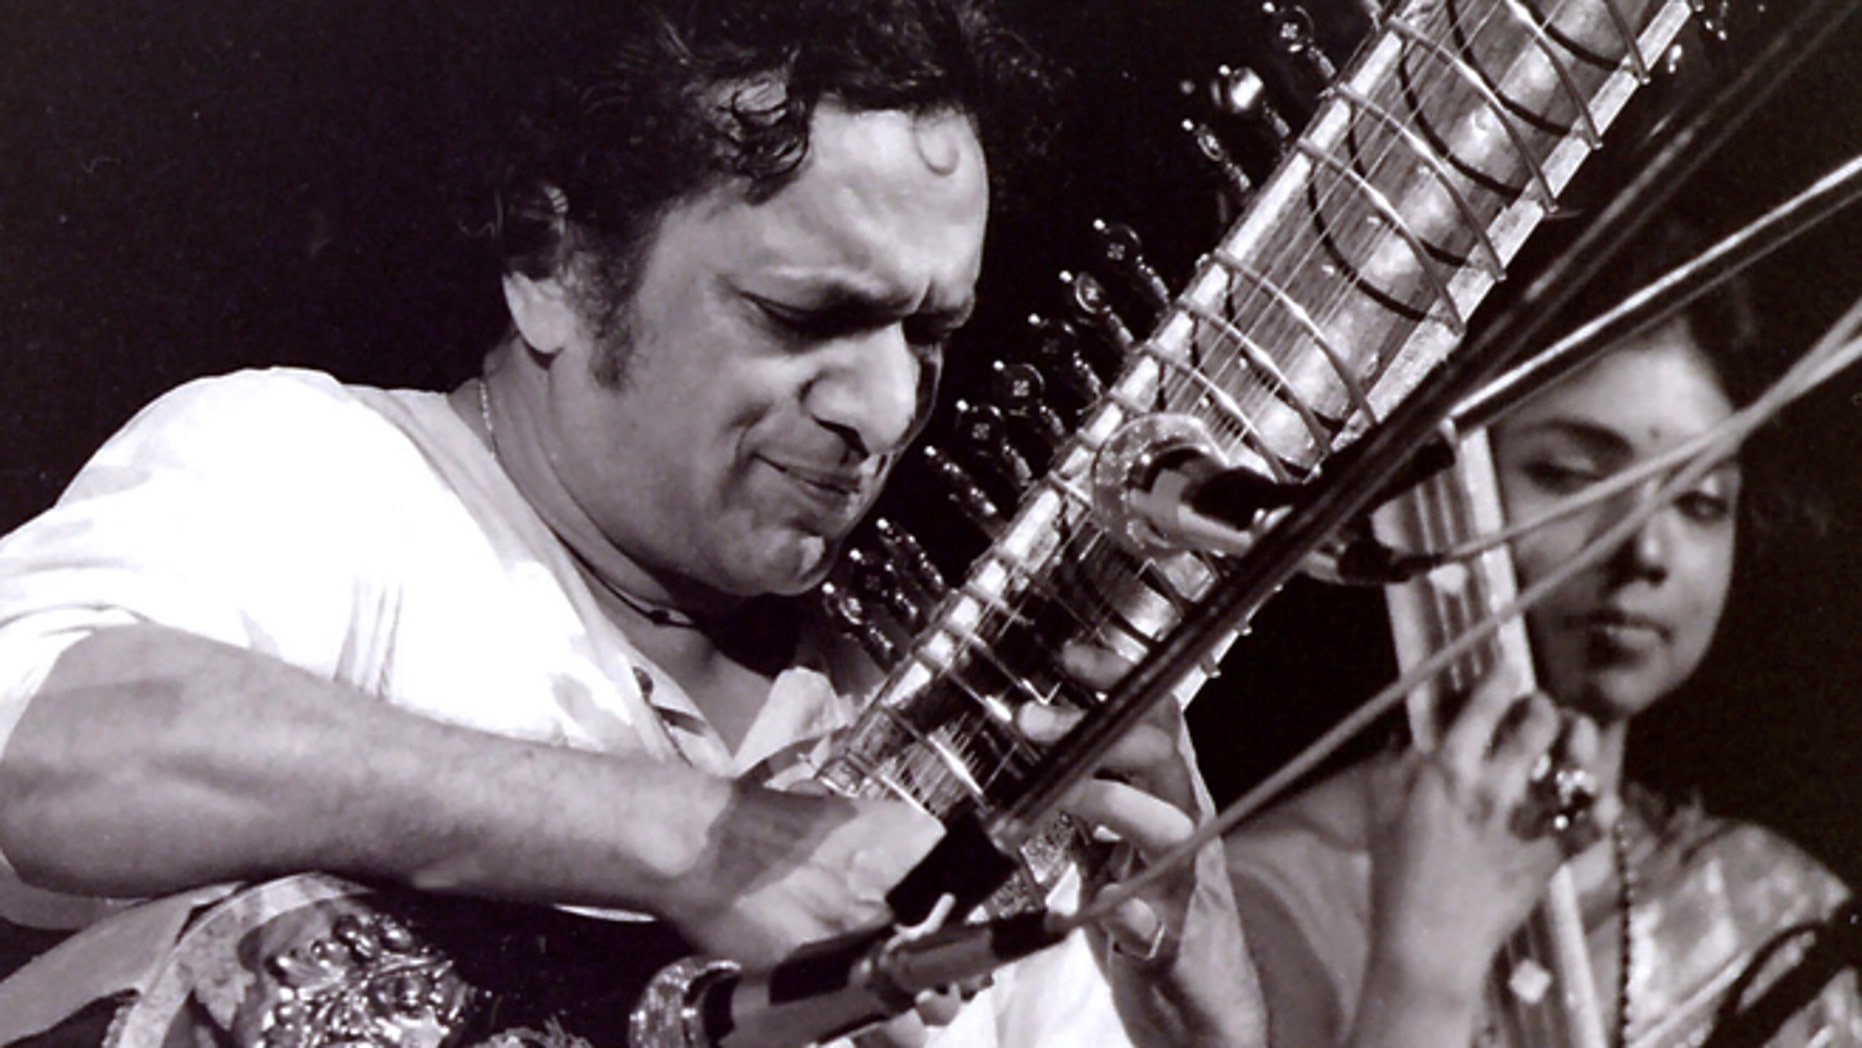 This August 1969 photo provided by Mark Goff shows Ravi Shankar performing at the Woodstock music festival.